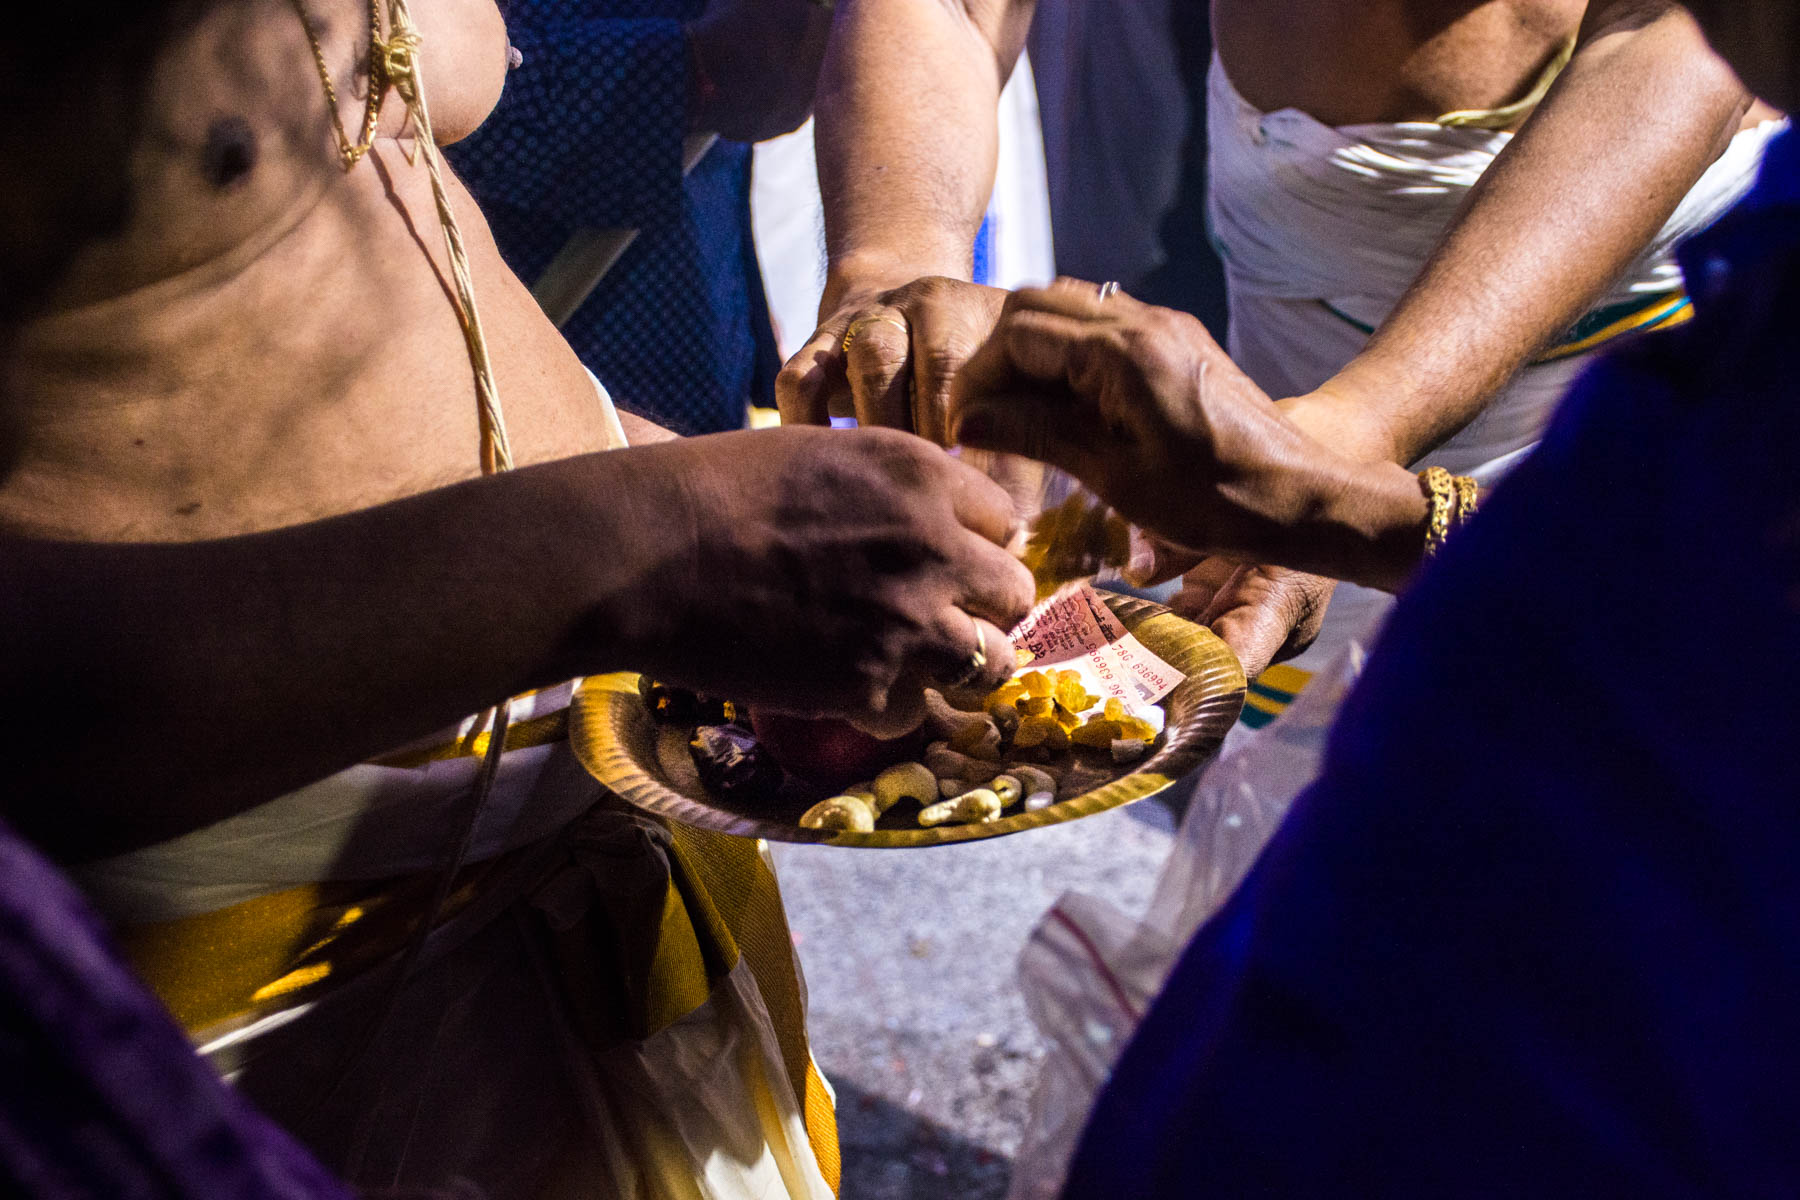 Offerings for Parthasarathy while celebrating Diwali in Chennai, India - Lost With Purpose